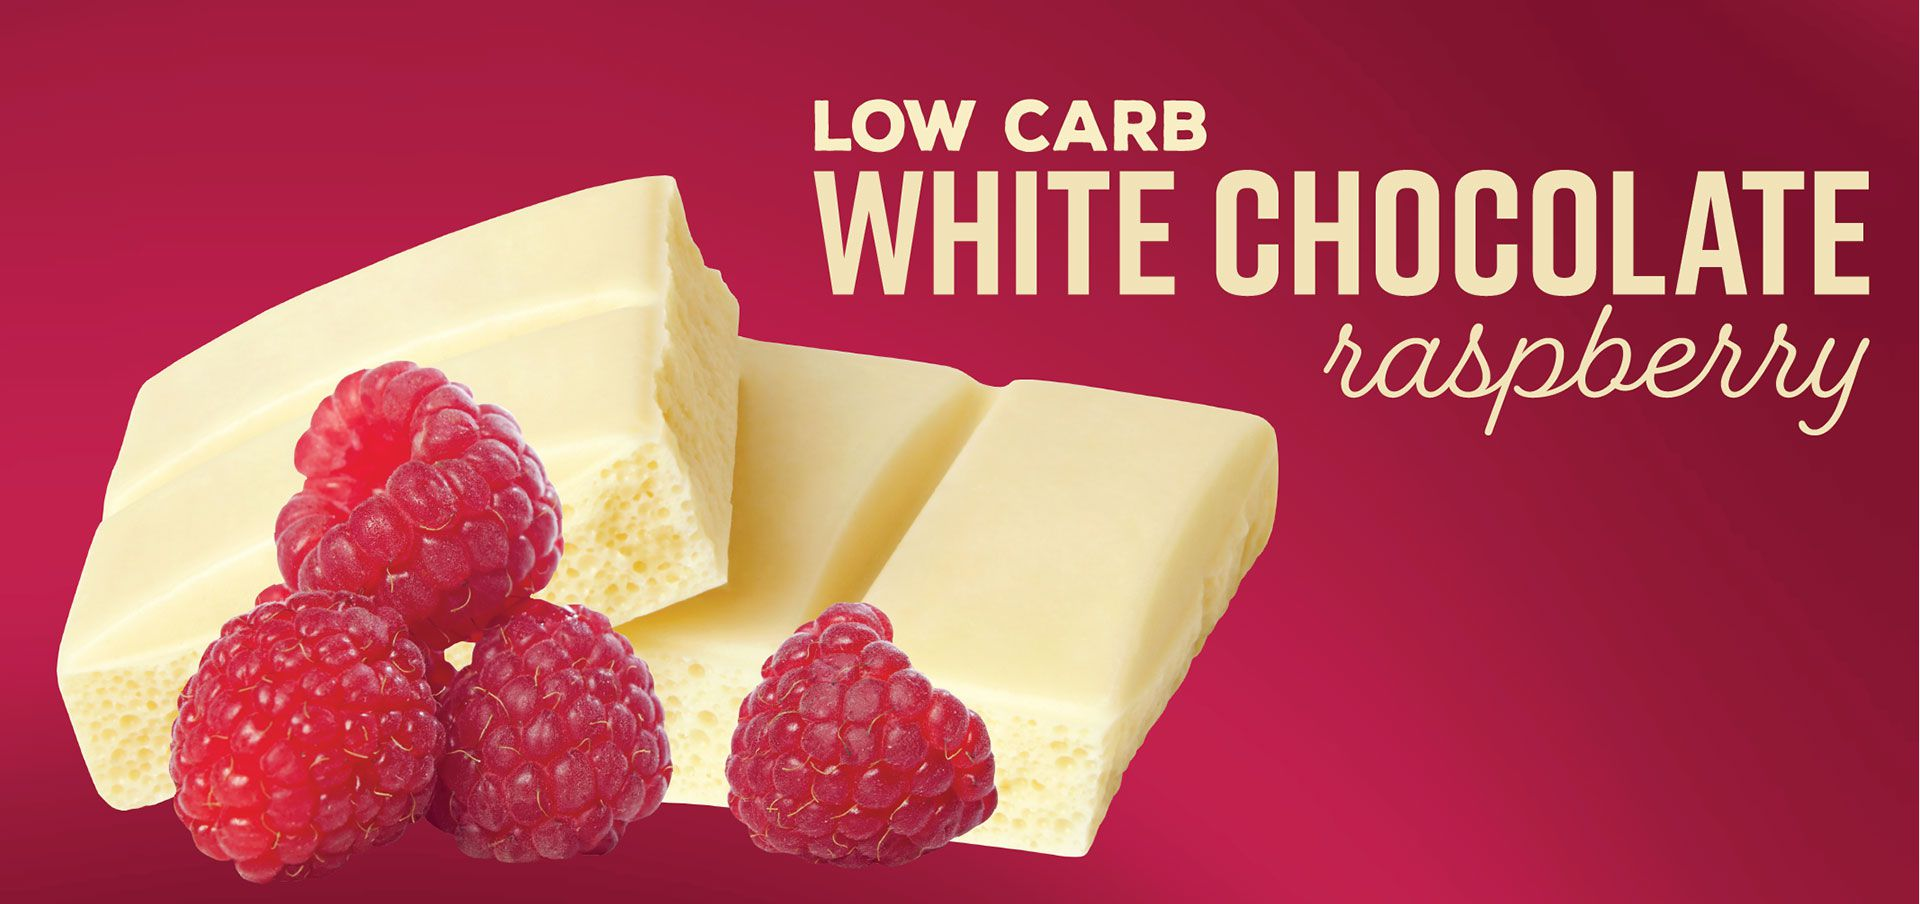 white chocolate raspberry label image